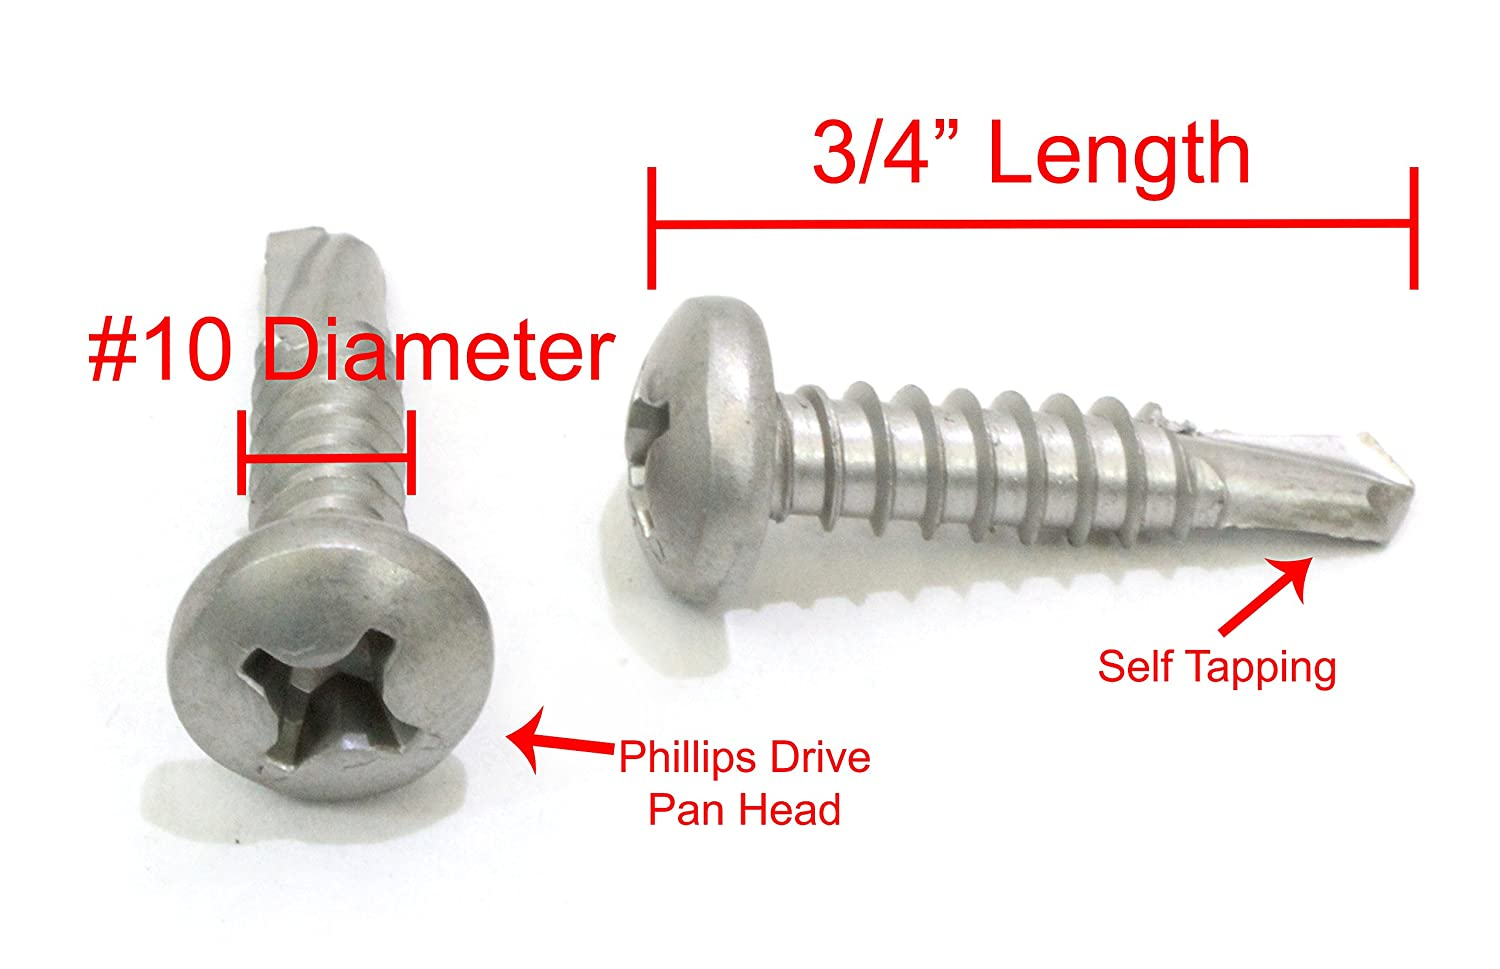 #10 X 3//4 Stainless Pan Head Phillips Self Drilling Screw, 410 Stainless Steel Self Tapping Screws by Bolt Dropper 50pc